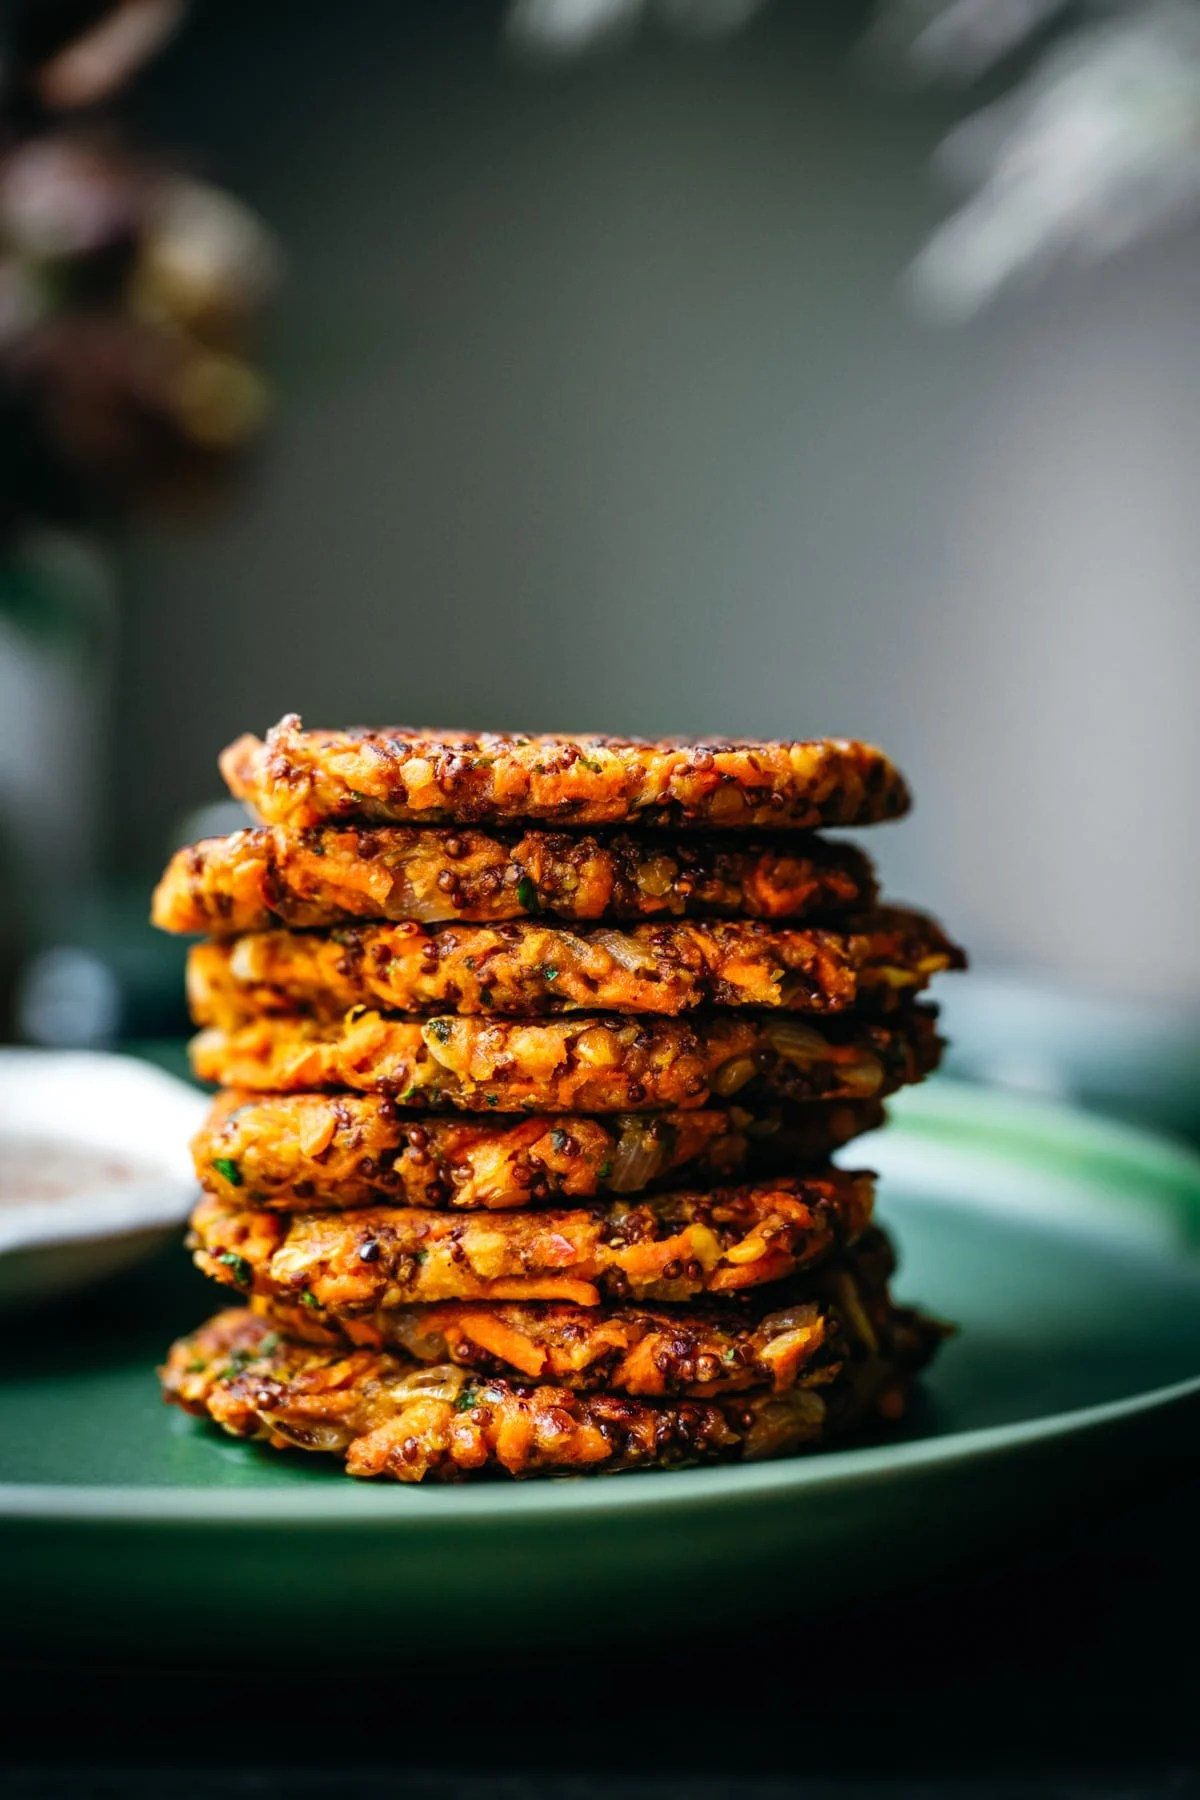 close up side view of a stack of carrot fritters on a green plate.